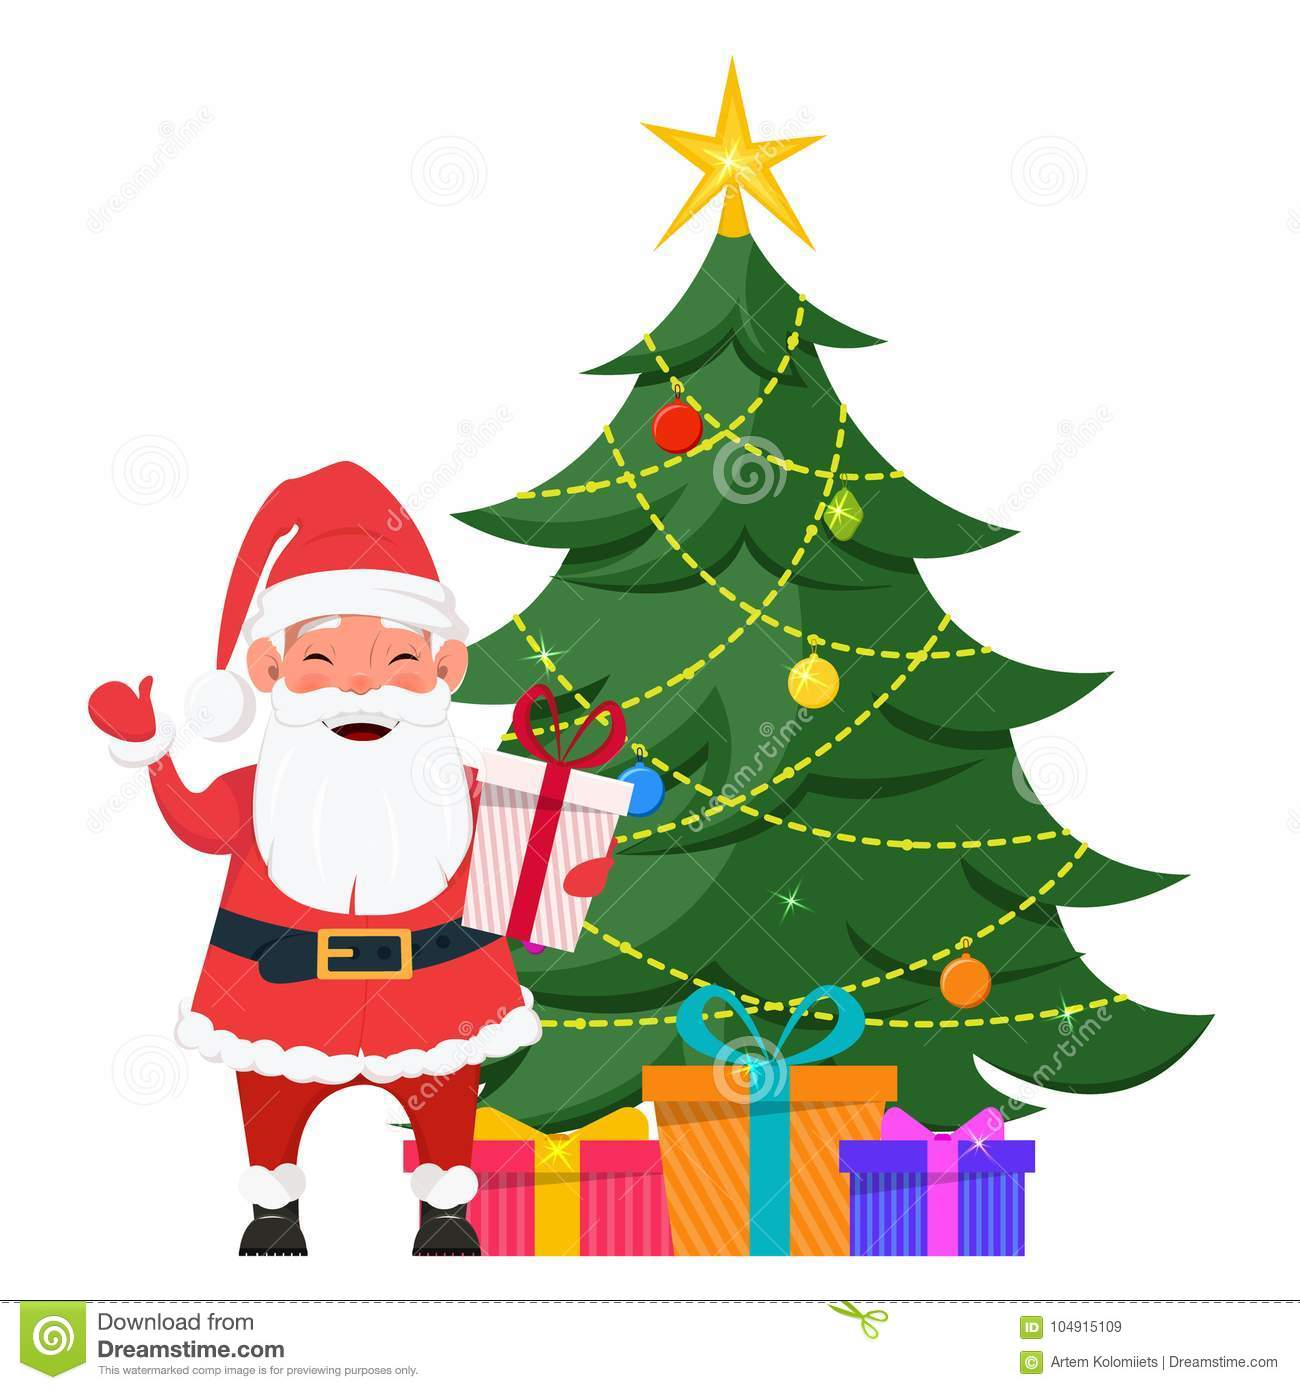 Presents Under The Christmas Tree: Santa Standing Near Christmas Tree With Presents Under It